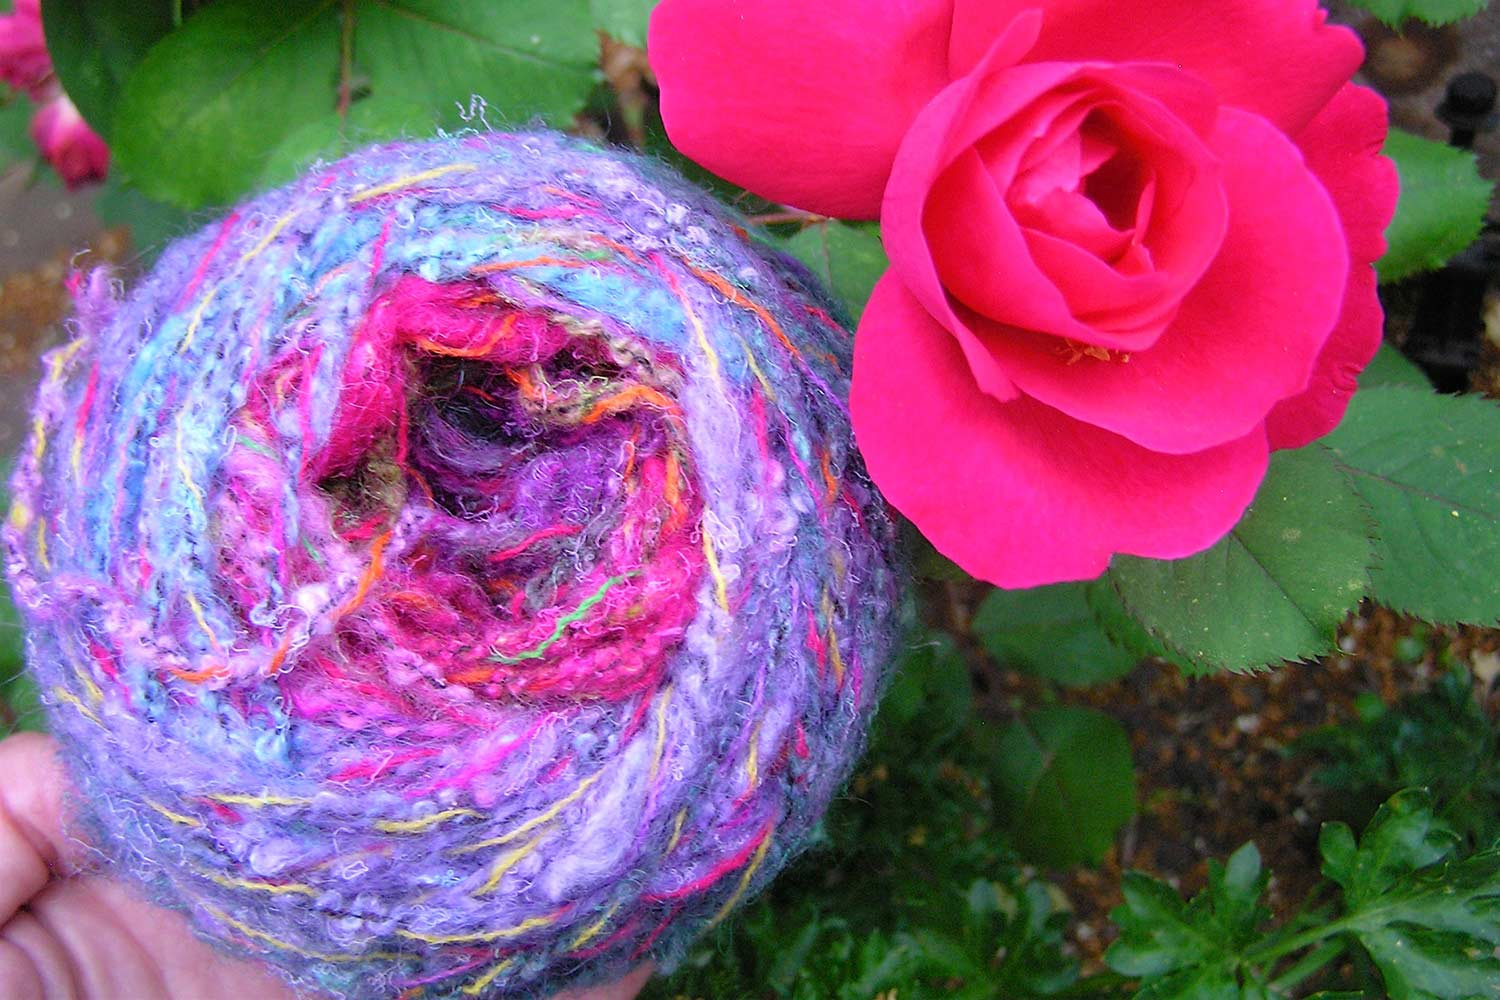 Very colourful hand wound ball of yarn being held beside a bright pink/red flower in the garden.